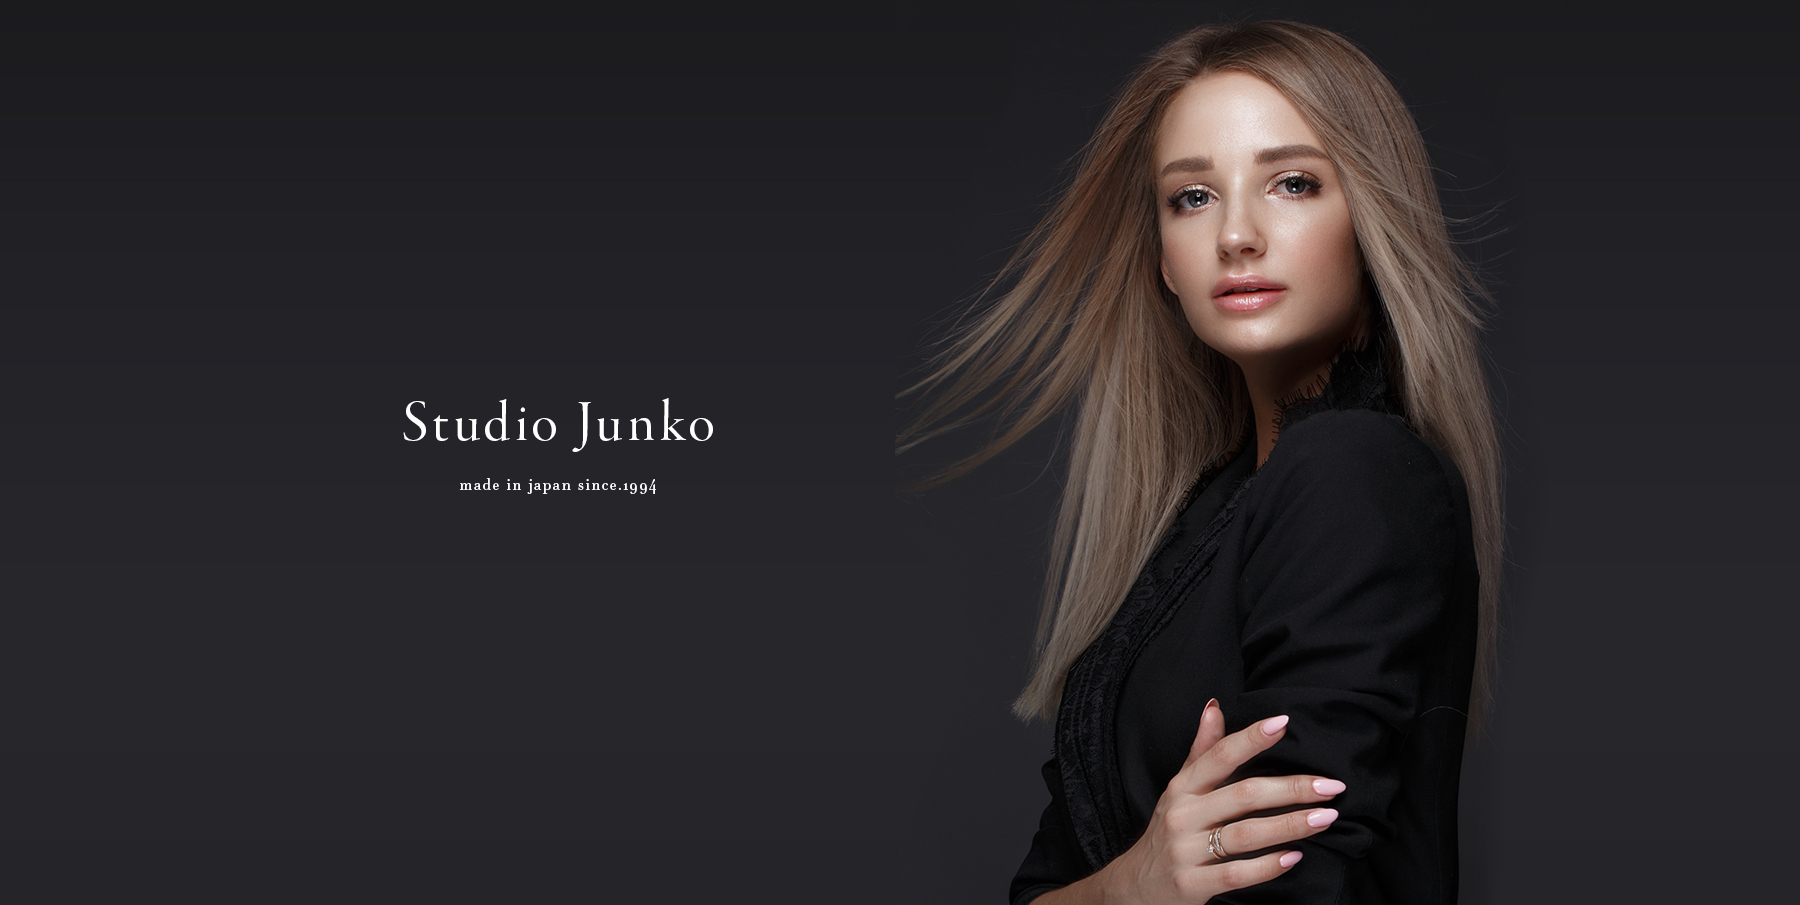 Studio Junko made in japan since.1994